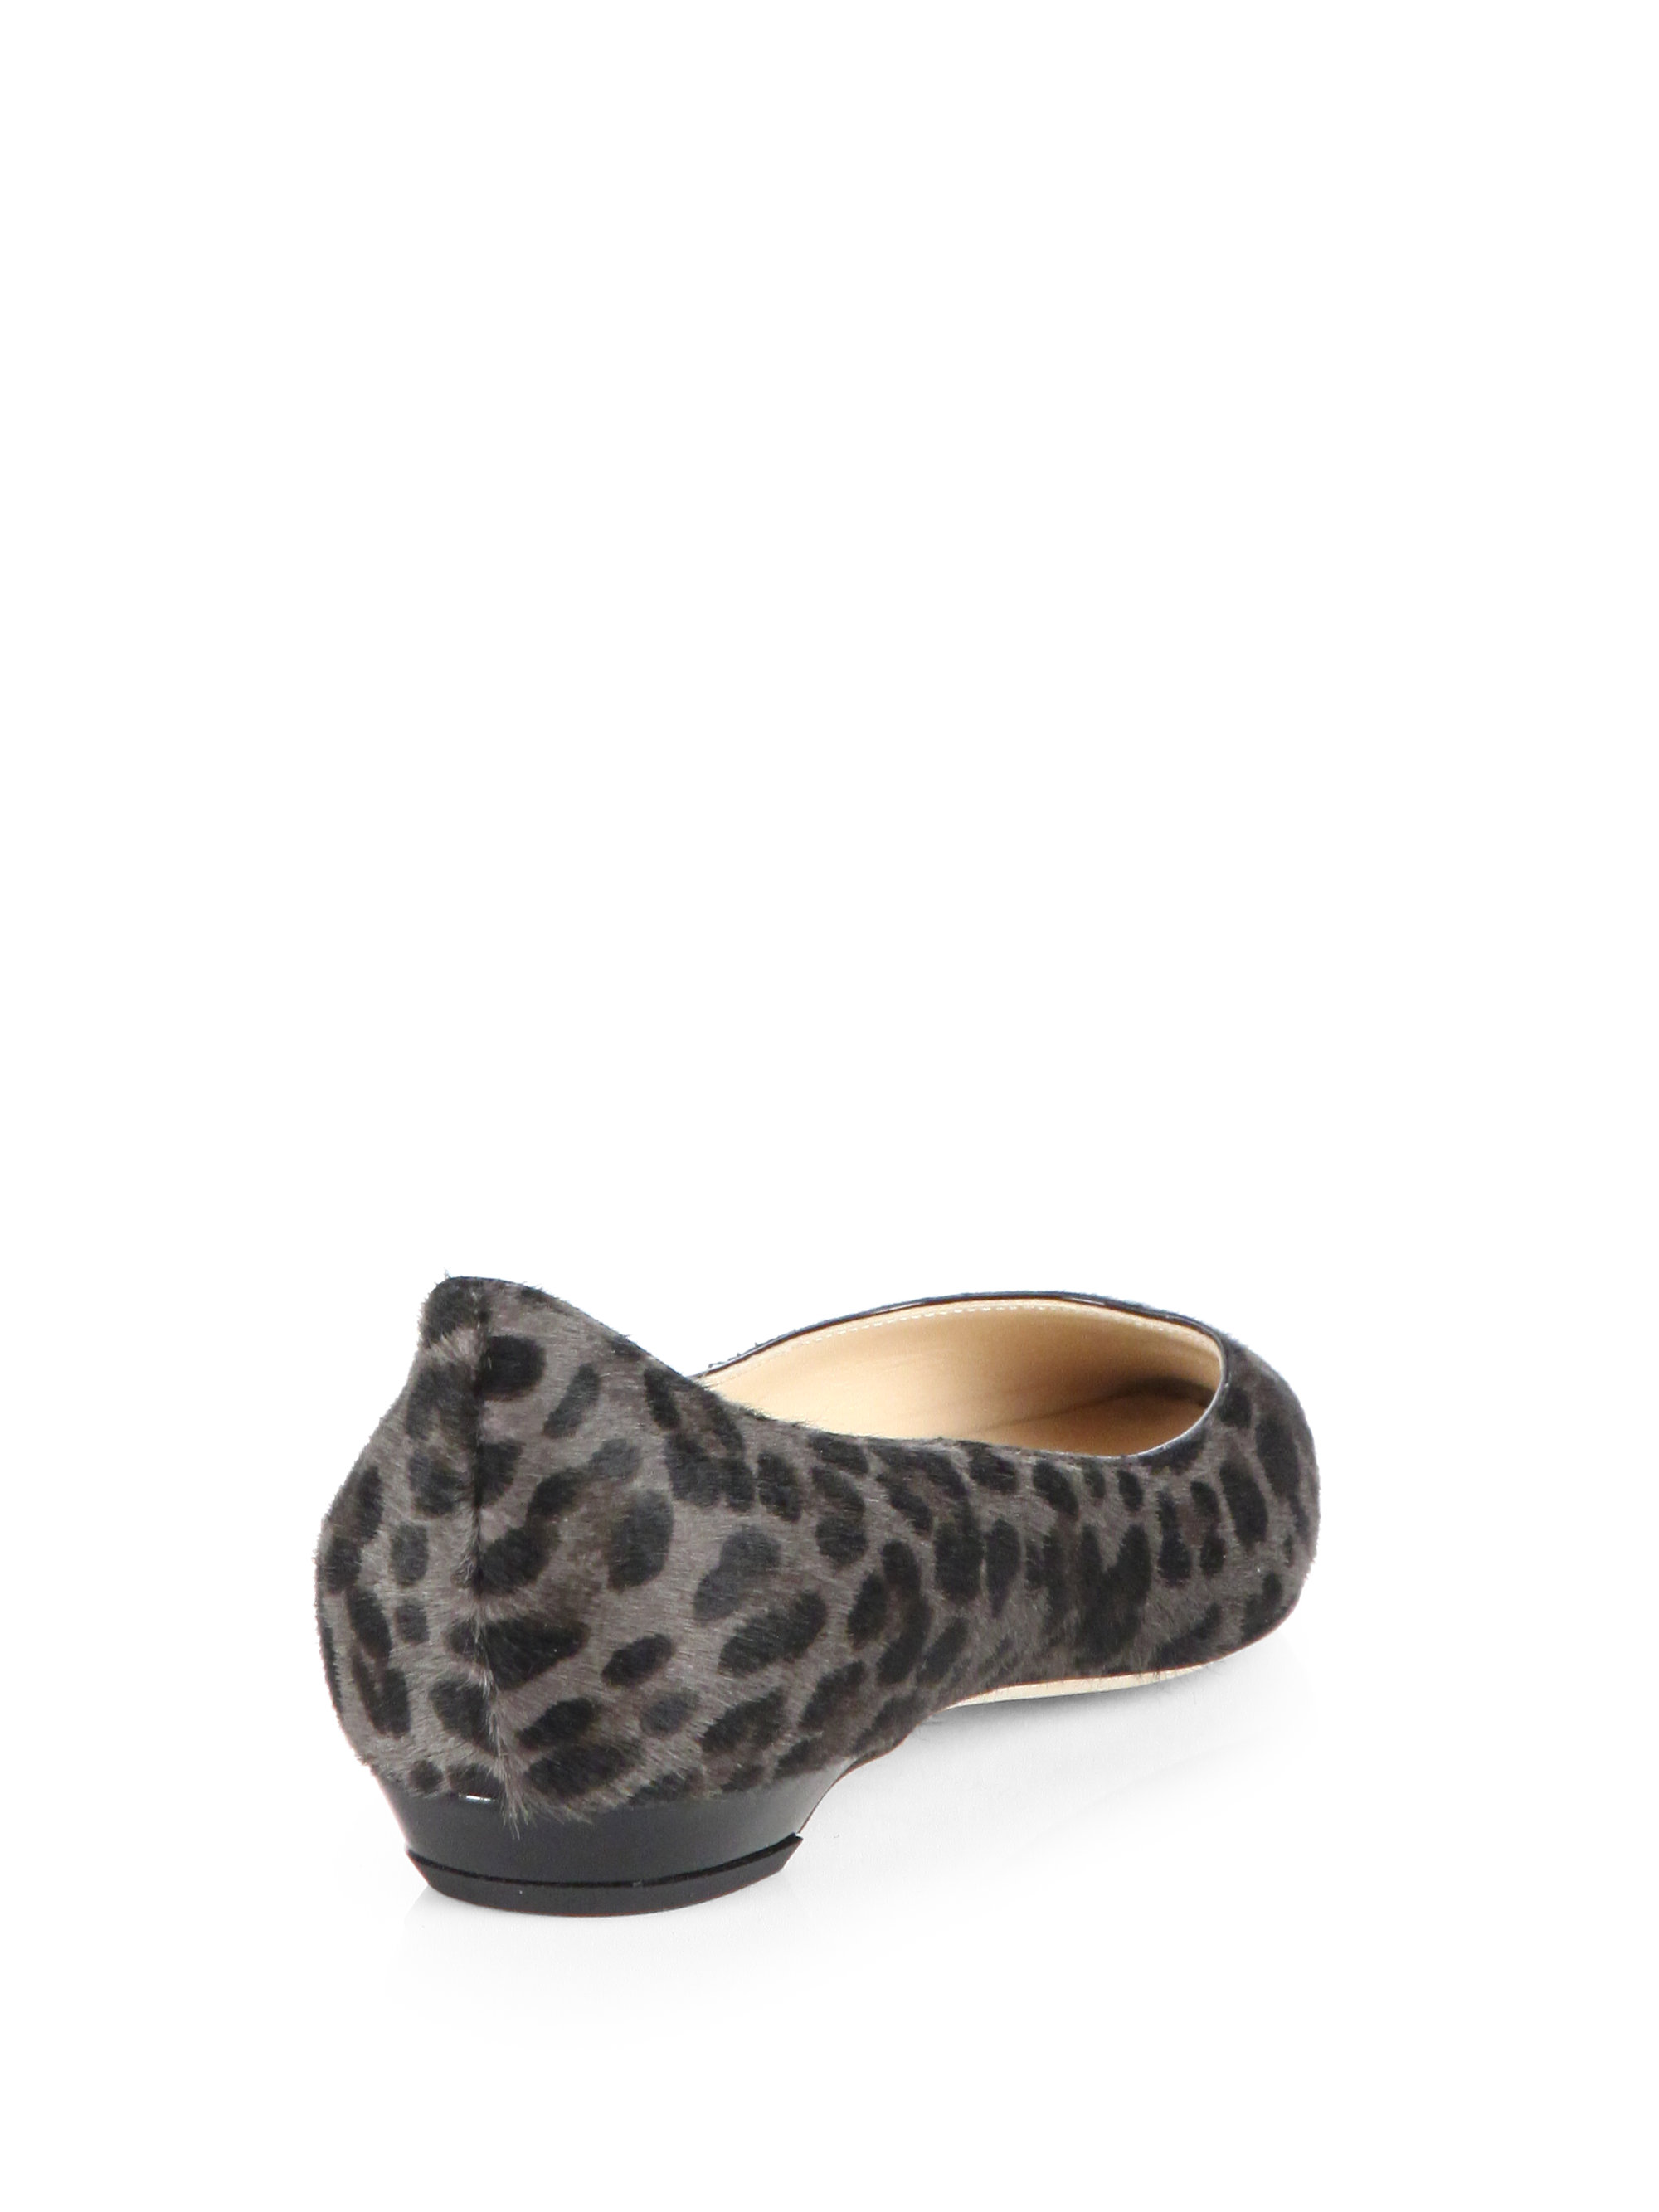 Jimmy Choo Ponyhair Square-Toe Loafers big discount sale online G6J9ld